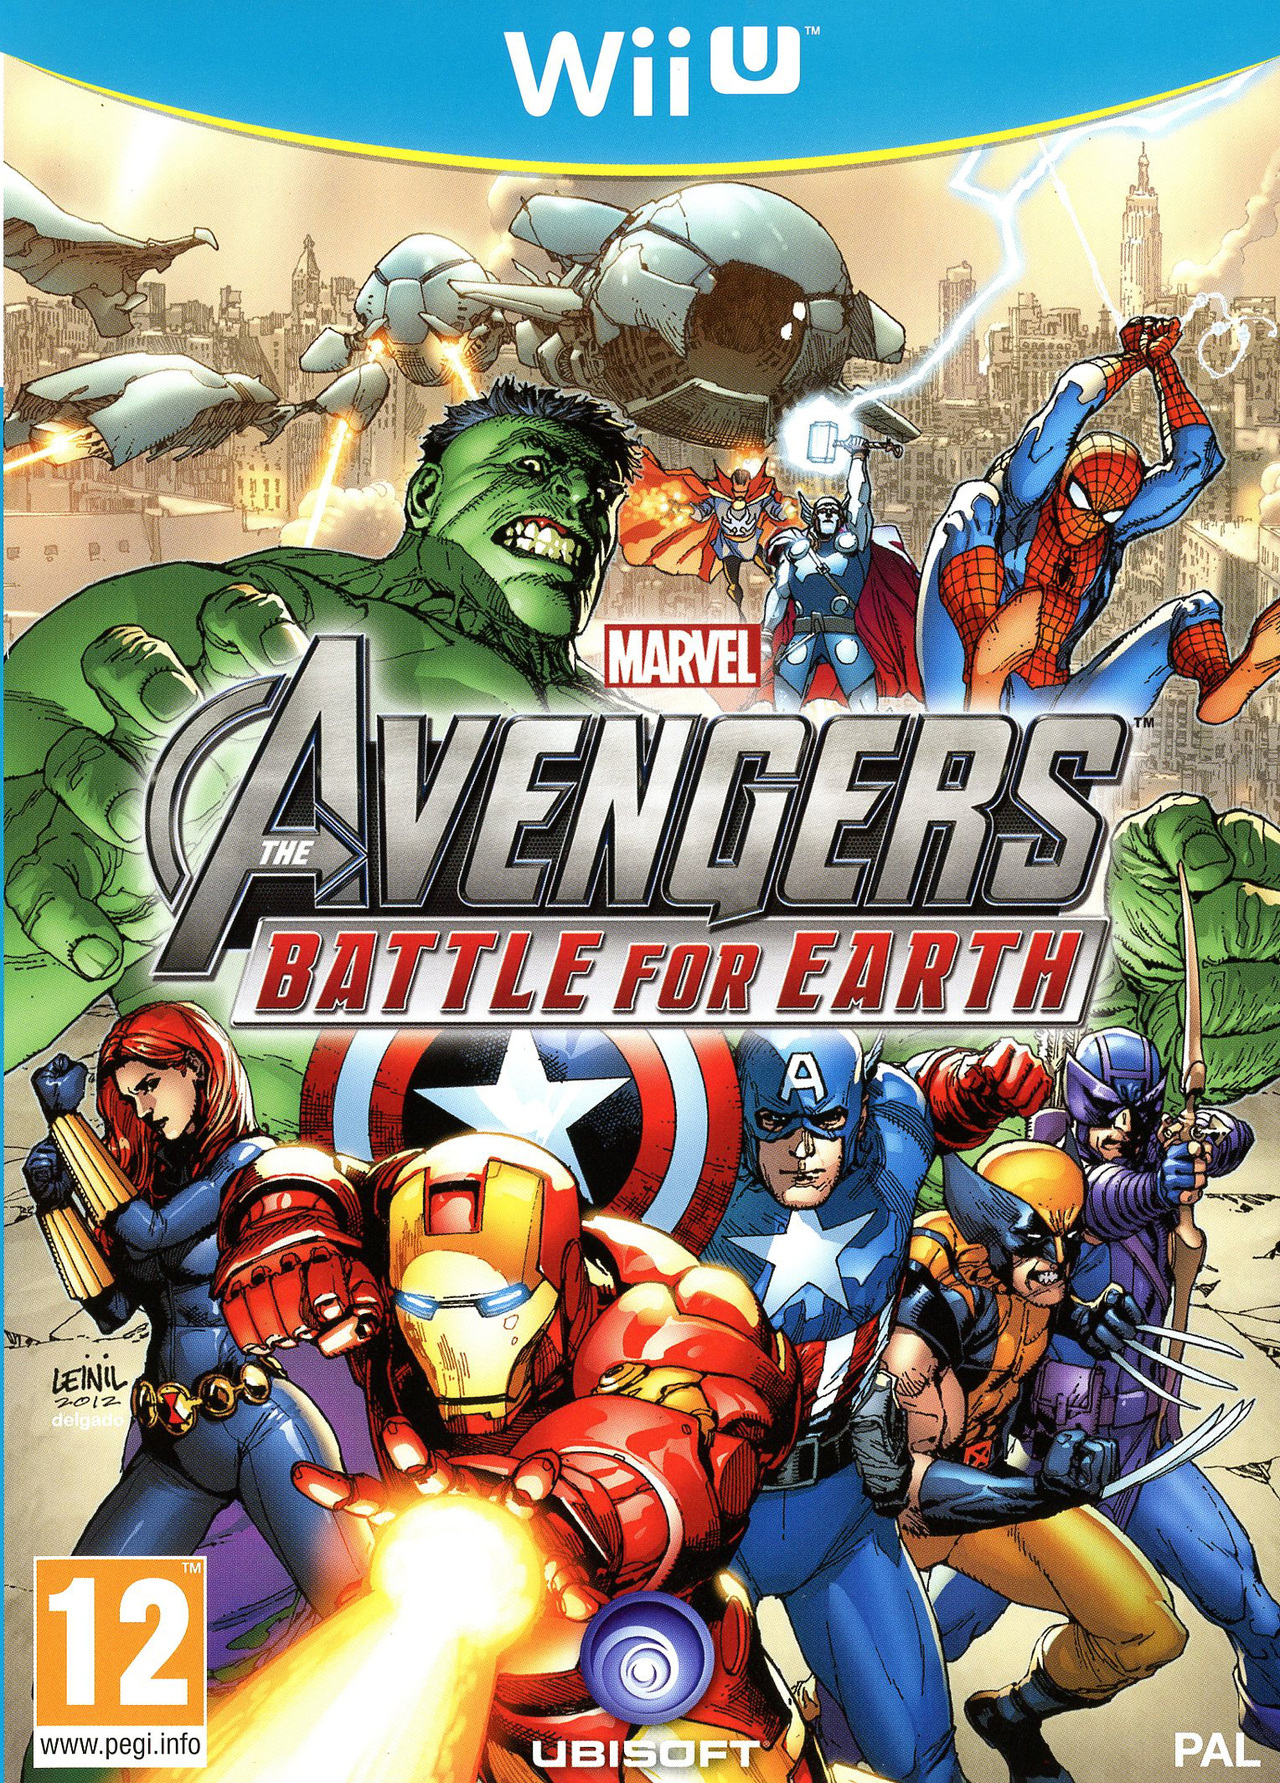 jeuxvideo.com Marvel Avengers : Battle for Earth - Wii U Image 1 sur